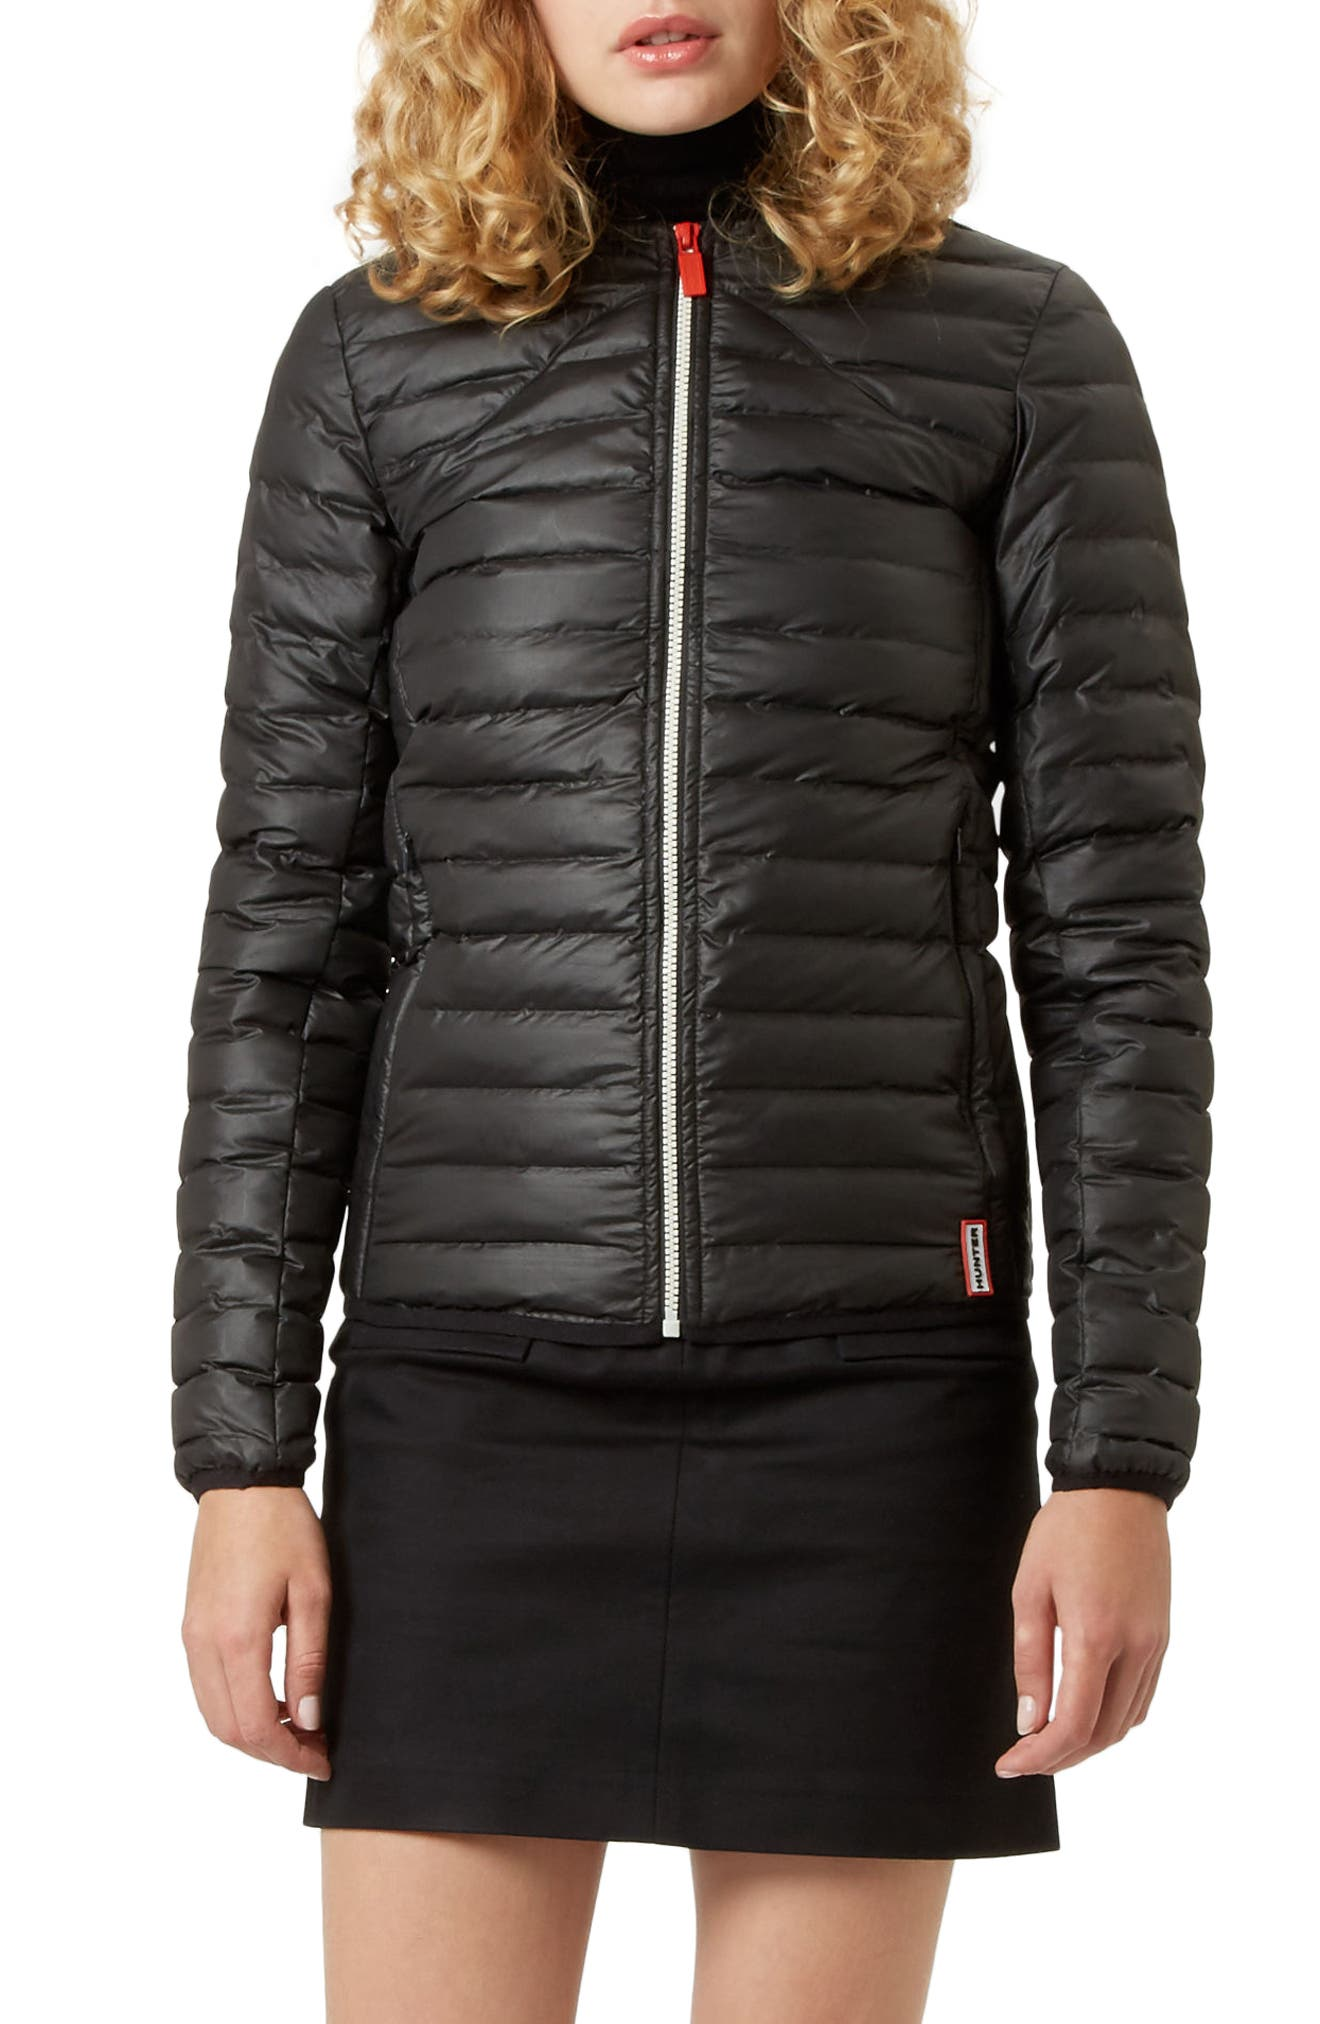 Original Midlayer Water Resistant Thermolite<sup>®</sup> Insulated Jacket,                             Main thumbnail 1, color,                             001